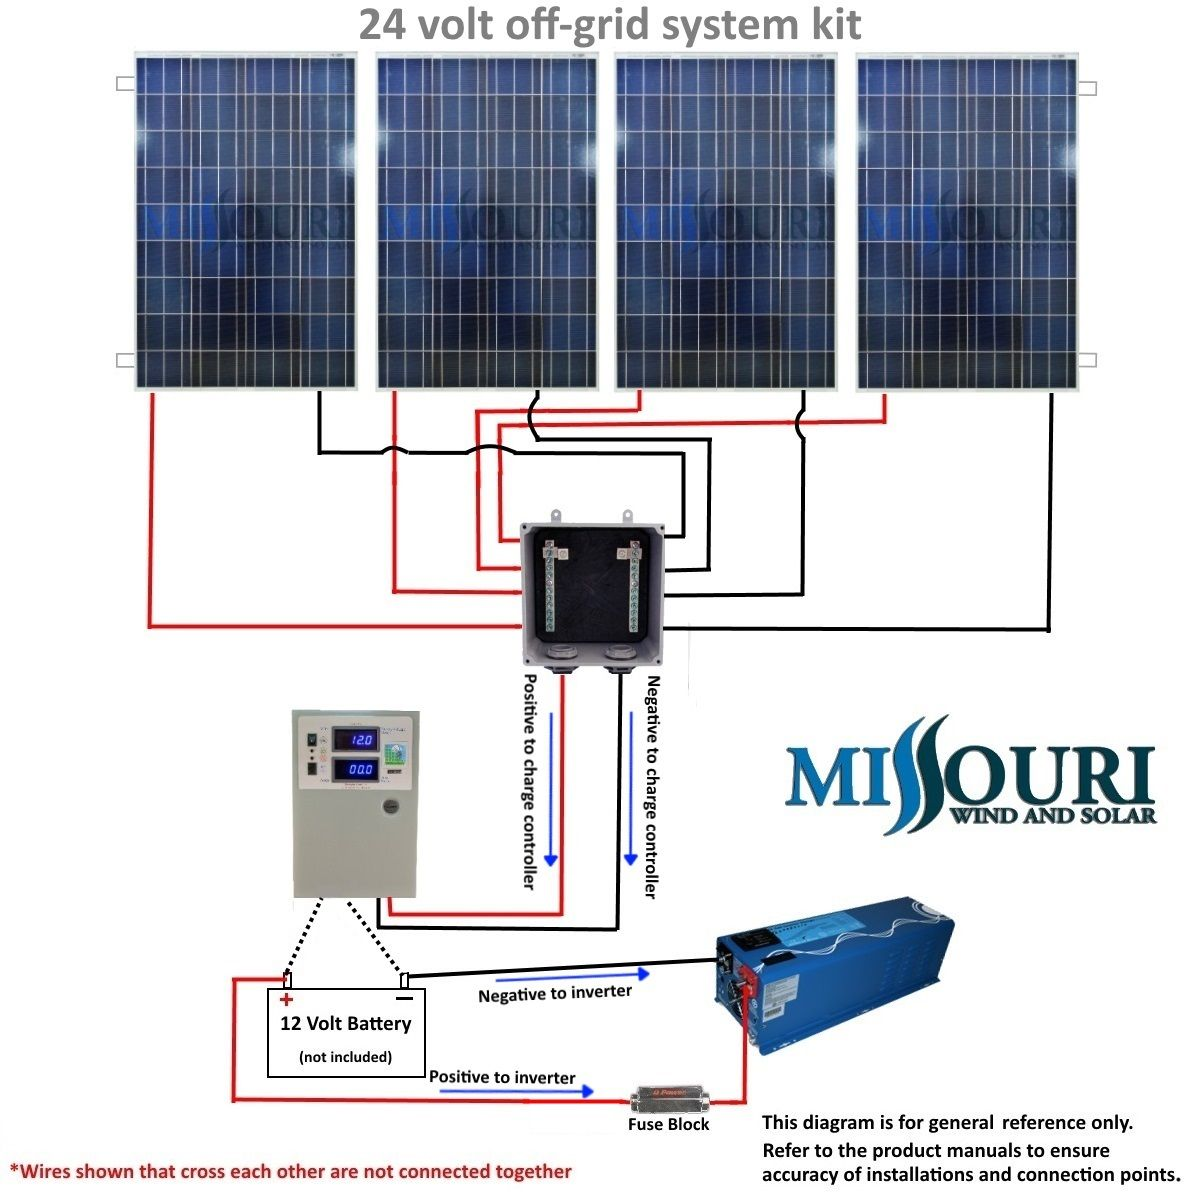 Wiring Solar Panels To The Grid 1000 Watt 24 Volt Off Panel Kit Techno Pinterest